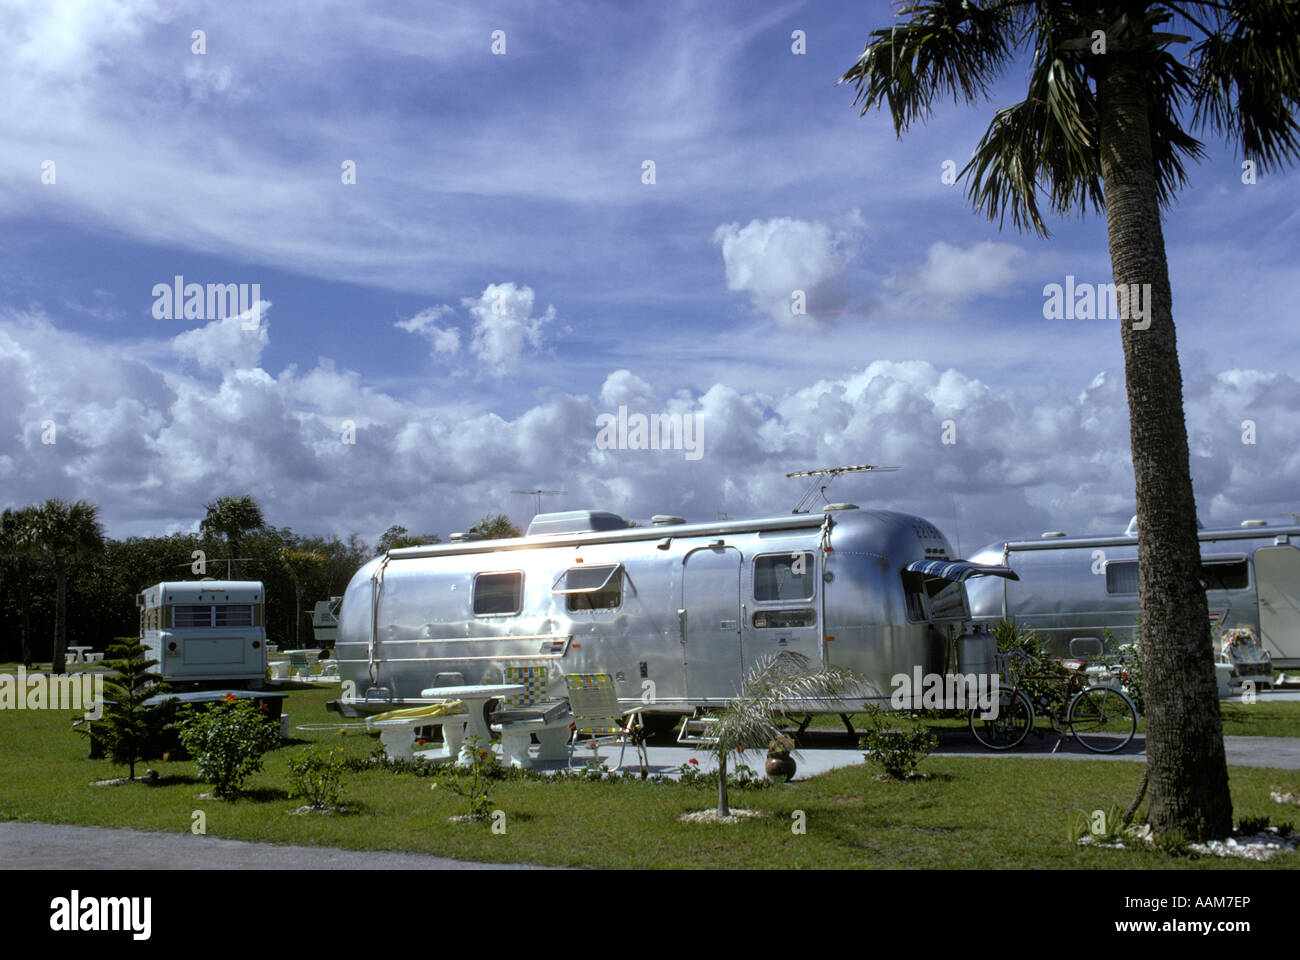 1970 1970s SILVER AIRSTREAM TRAILER IN MOBILE HOME PARK FLORIDA PALM TREE